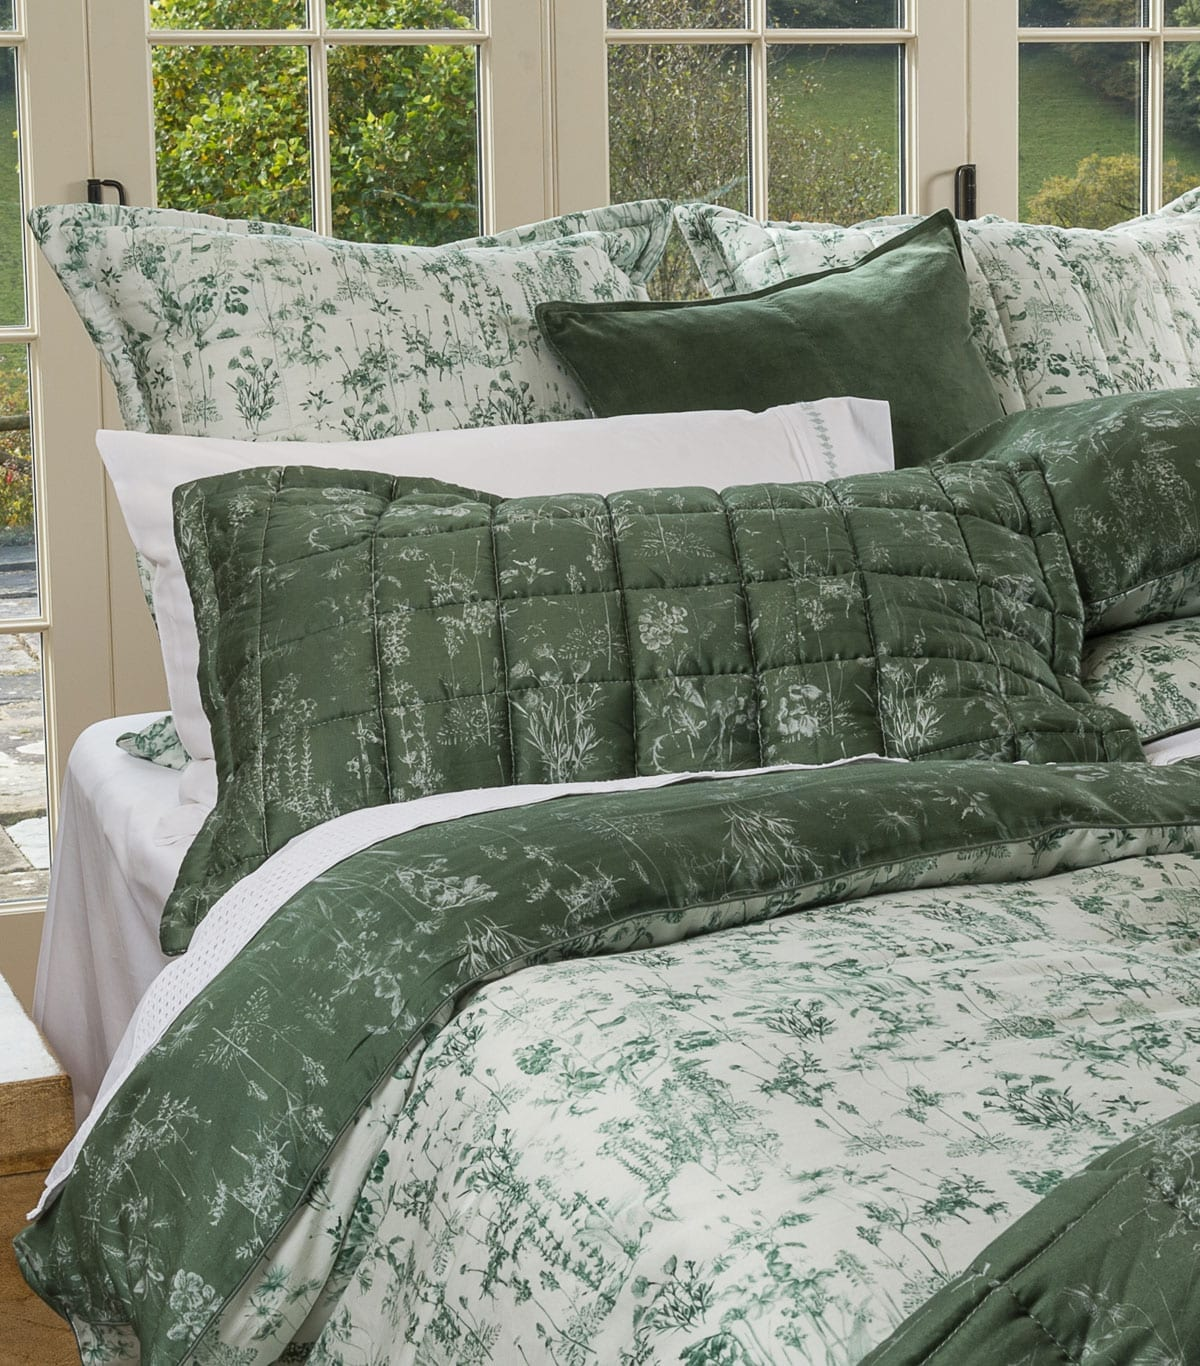 European Pillowcases Online Mm Linen Meadow Europe Pillowcase Set Mckenzie And Willis